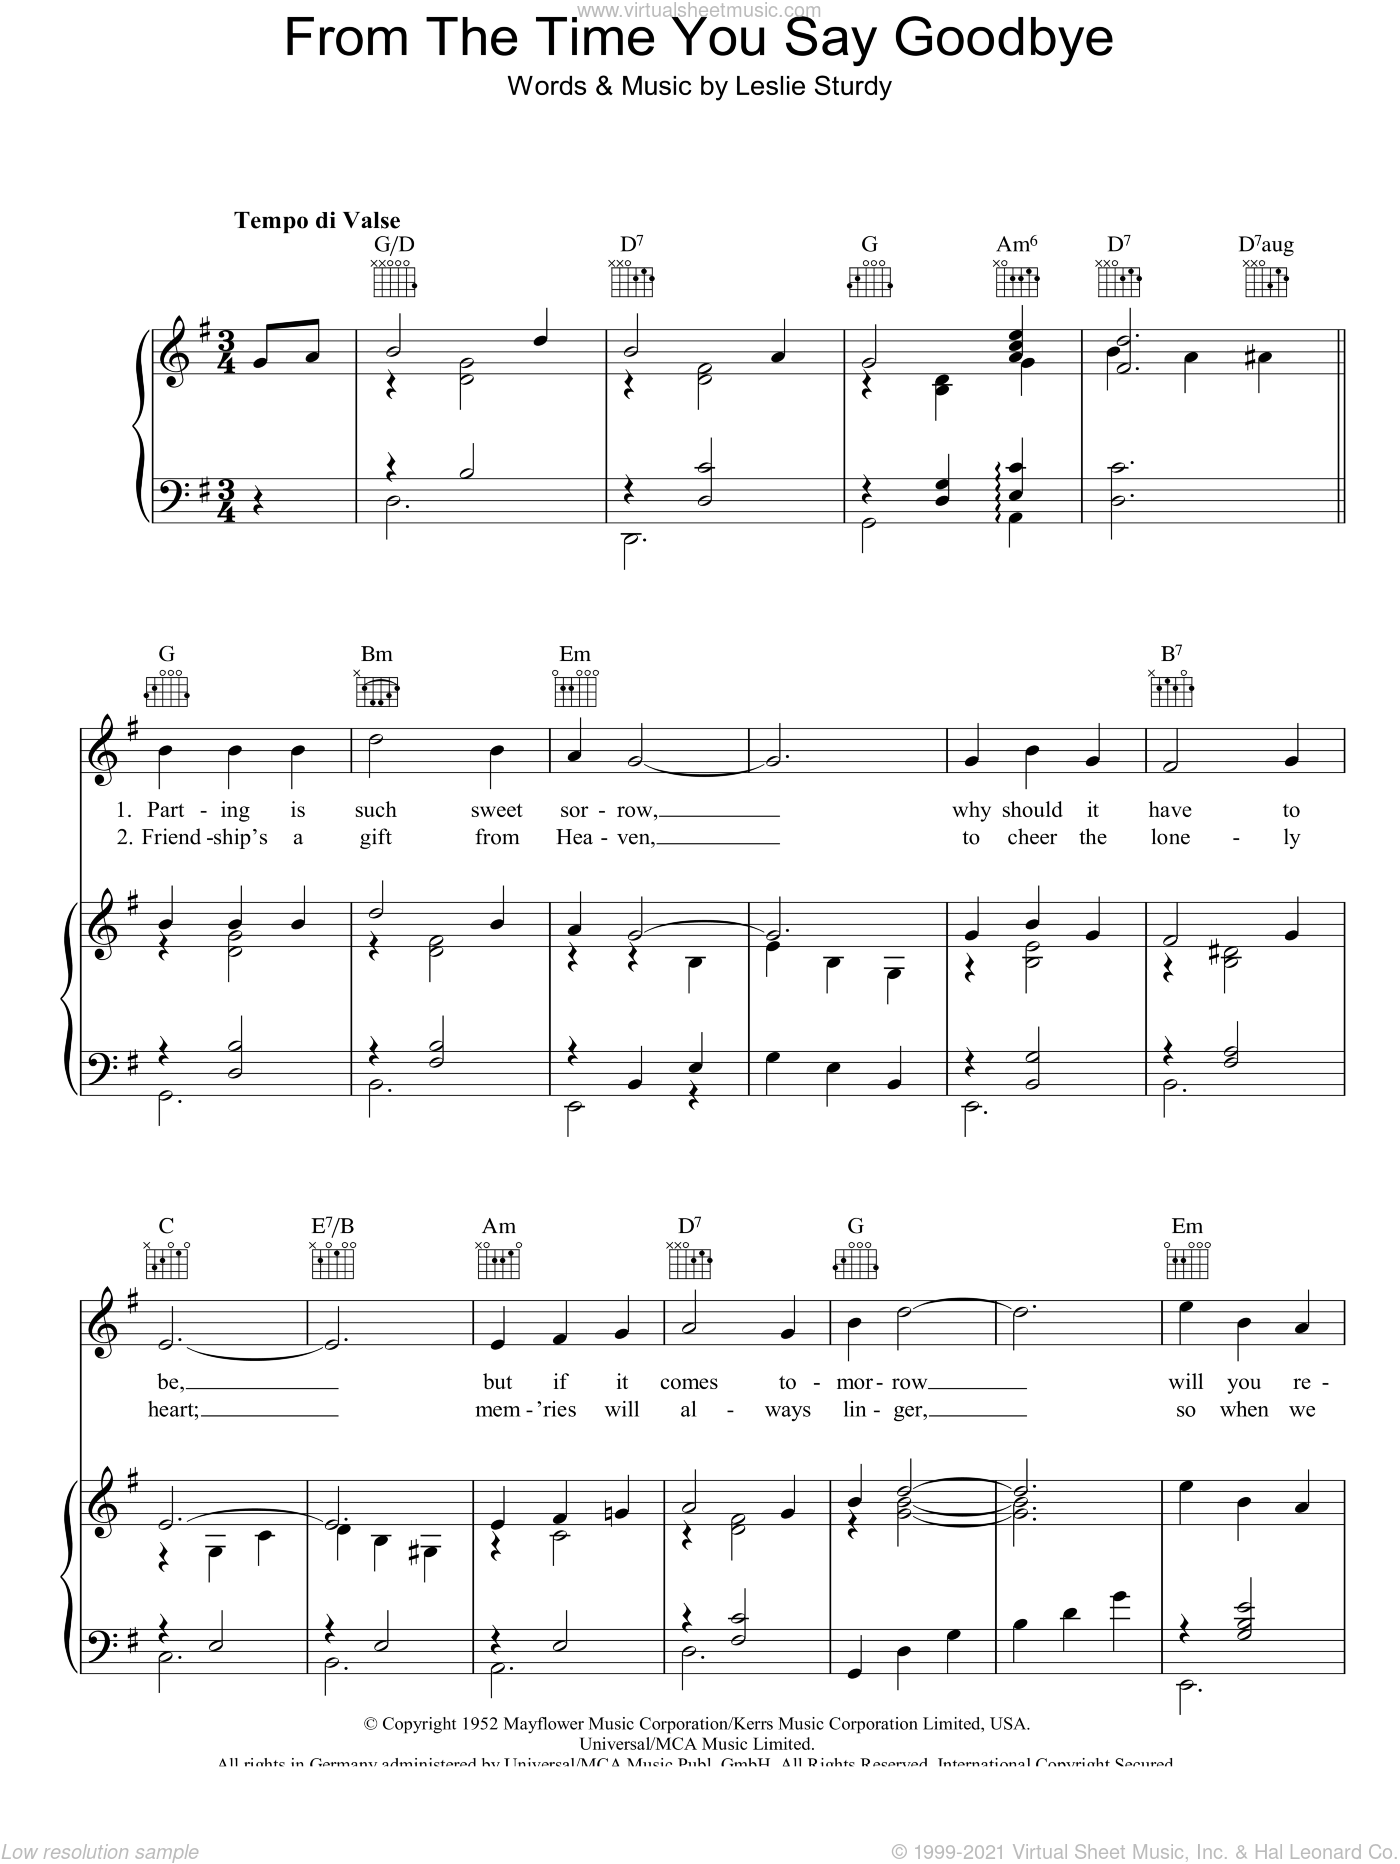 From The Time You Say Goodbye sheet music for voice, piano or guitar by Vera Lynn and Leslie Sturdy, intermediate